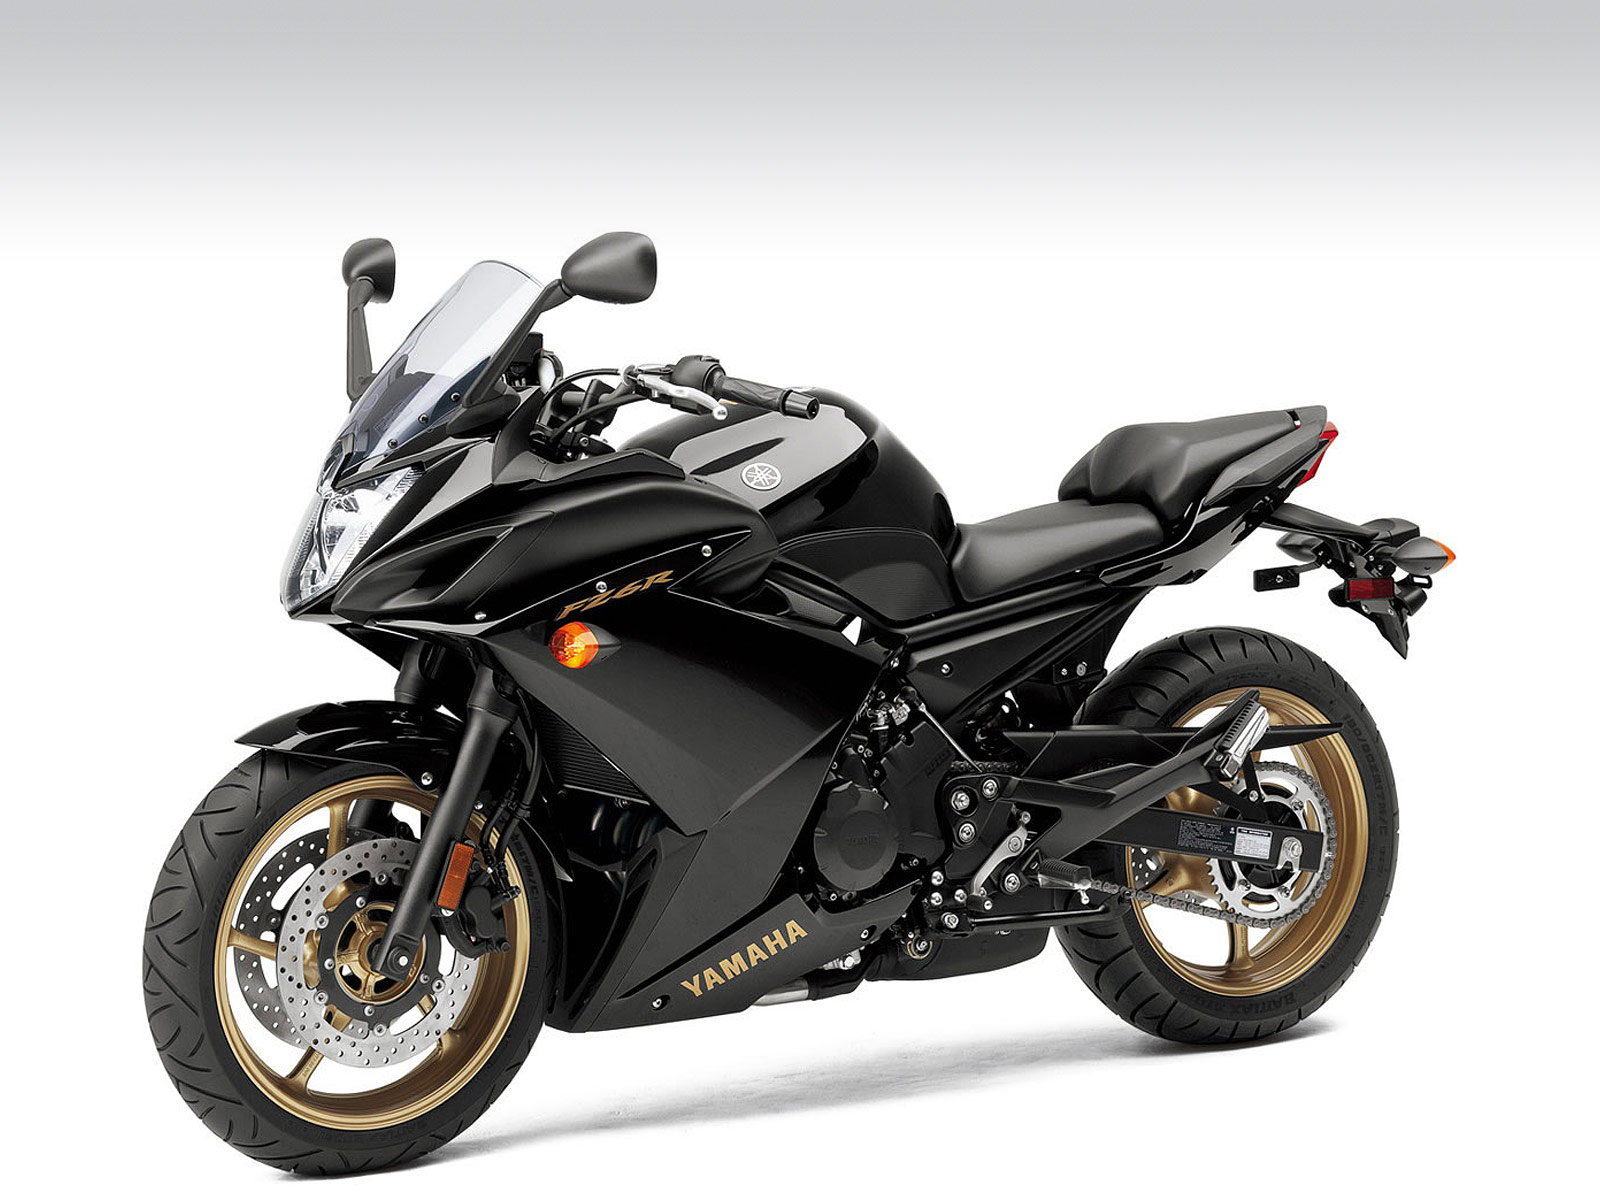 2010 FZ6R YAMAHA pictures and specs